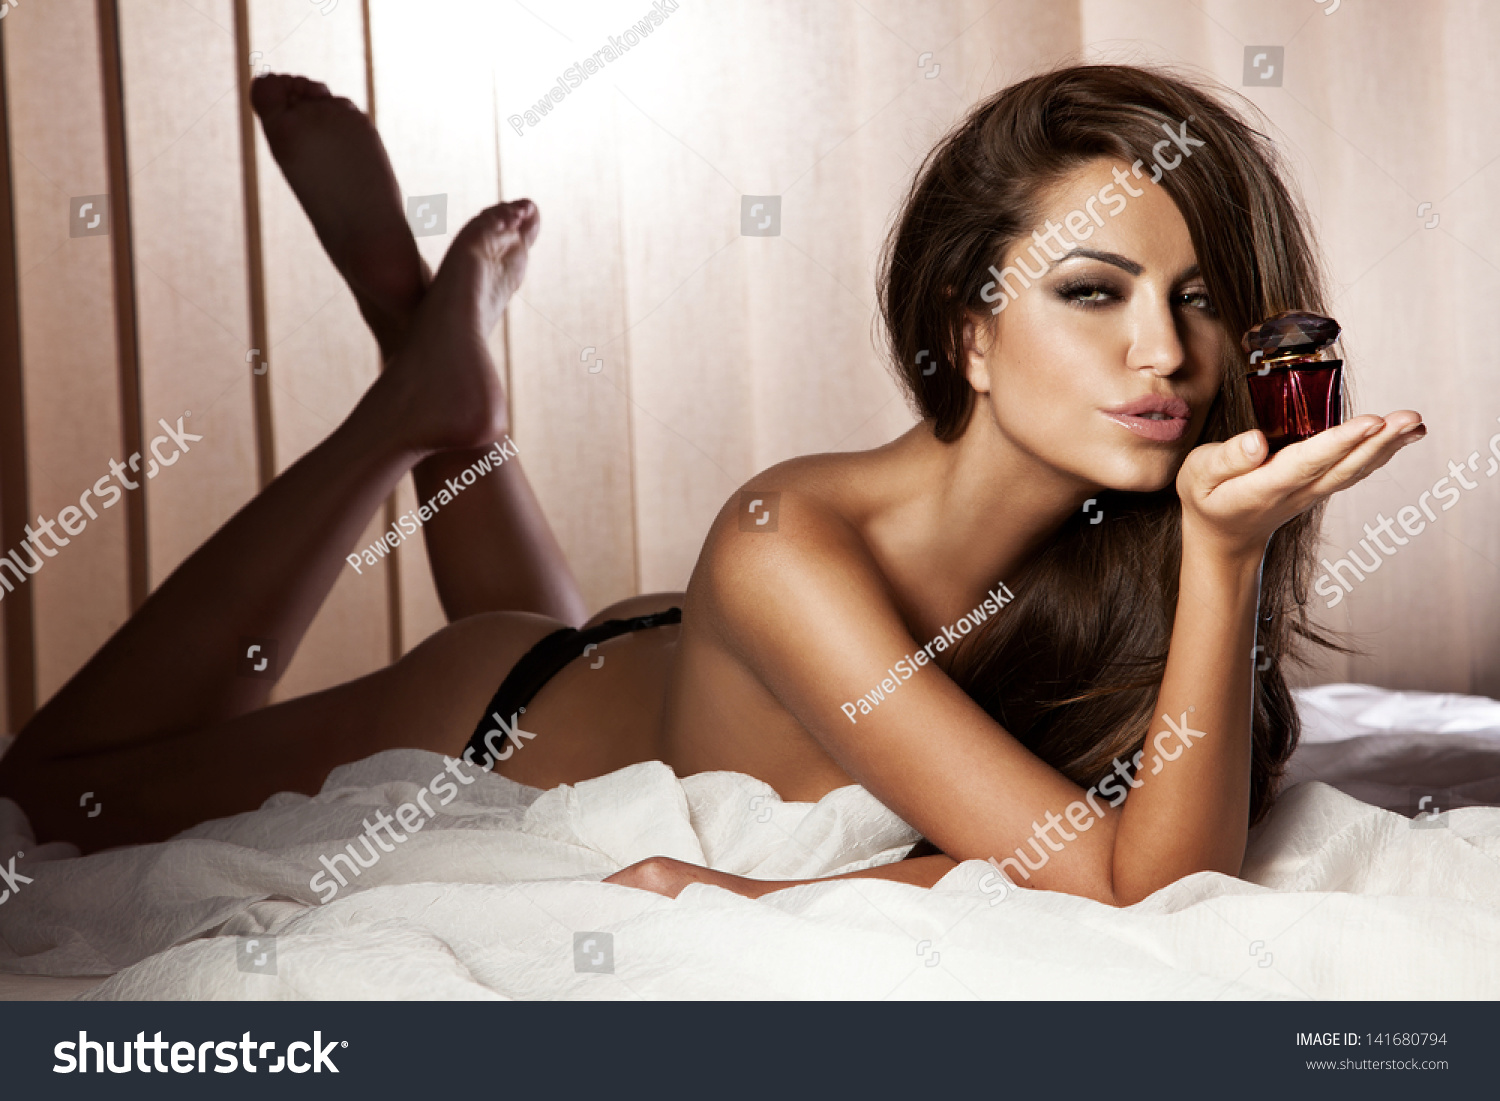 naked beautiful brunette woman lying bed stock photo & image